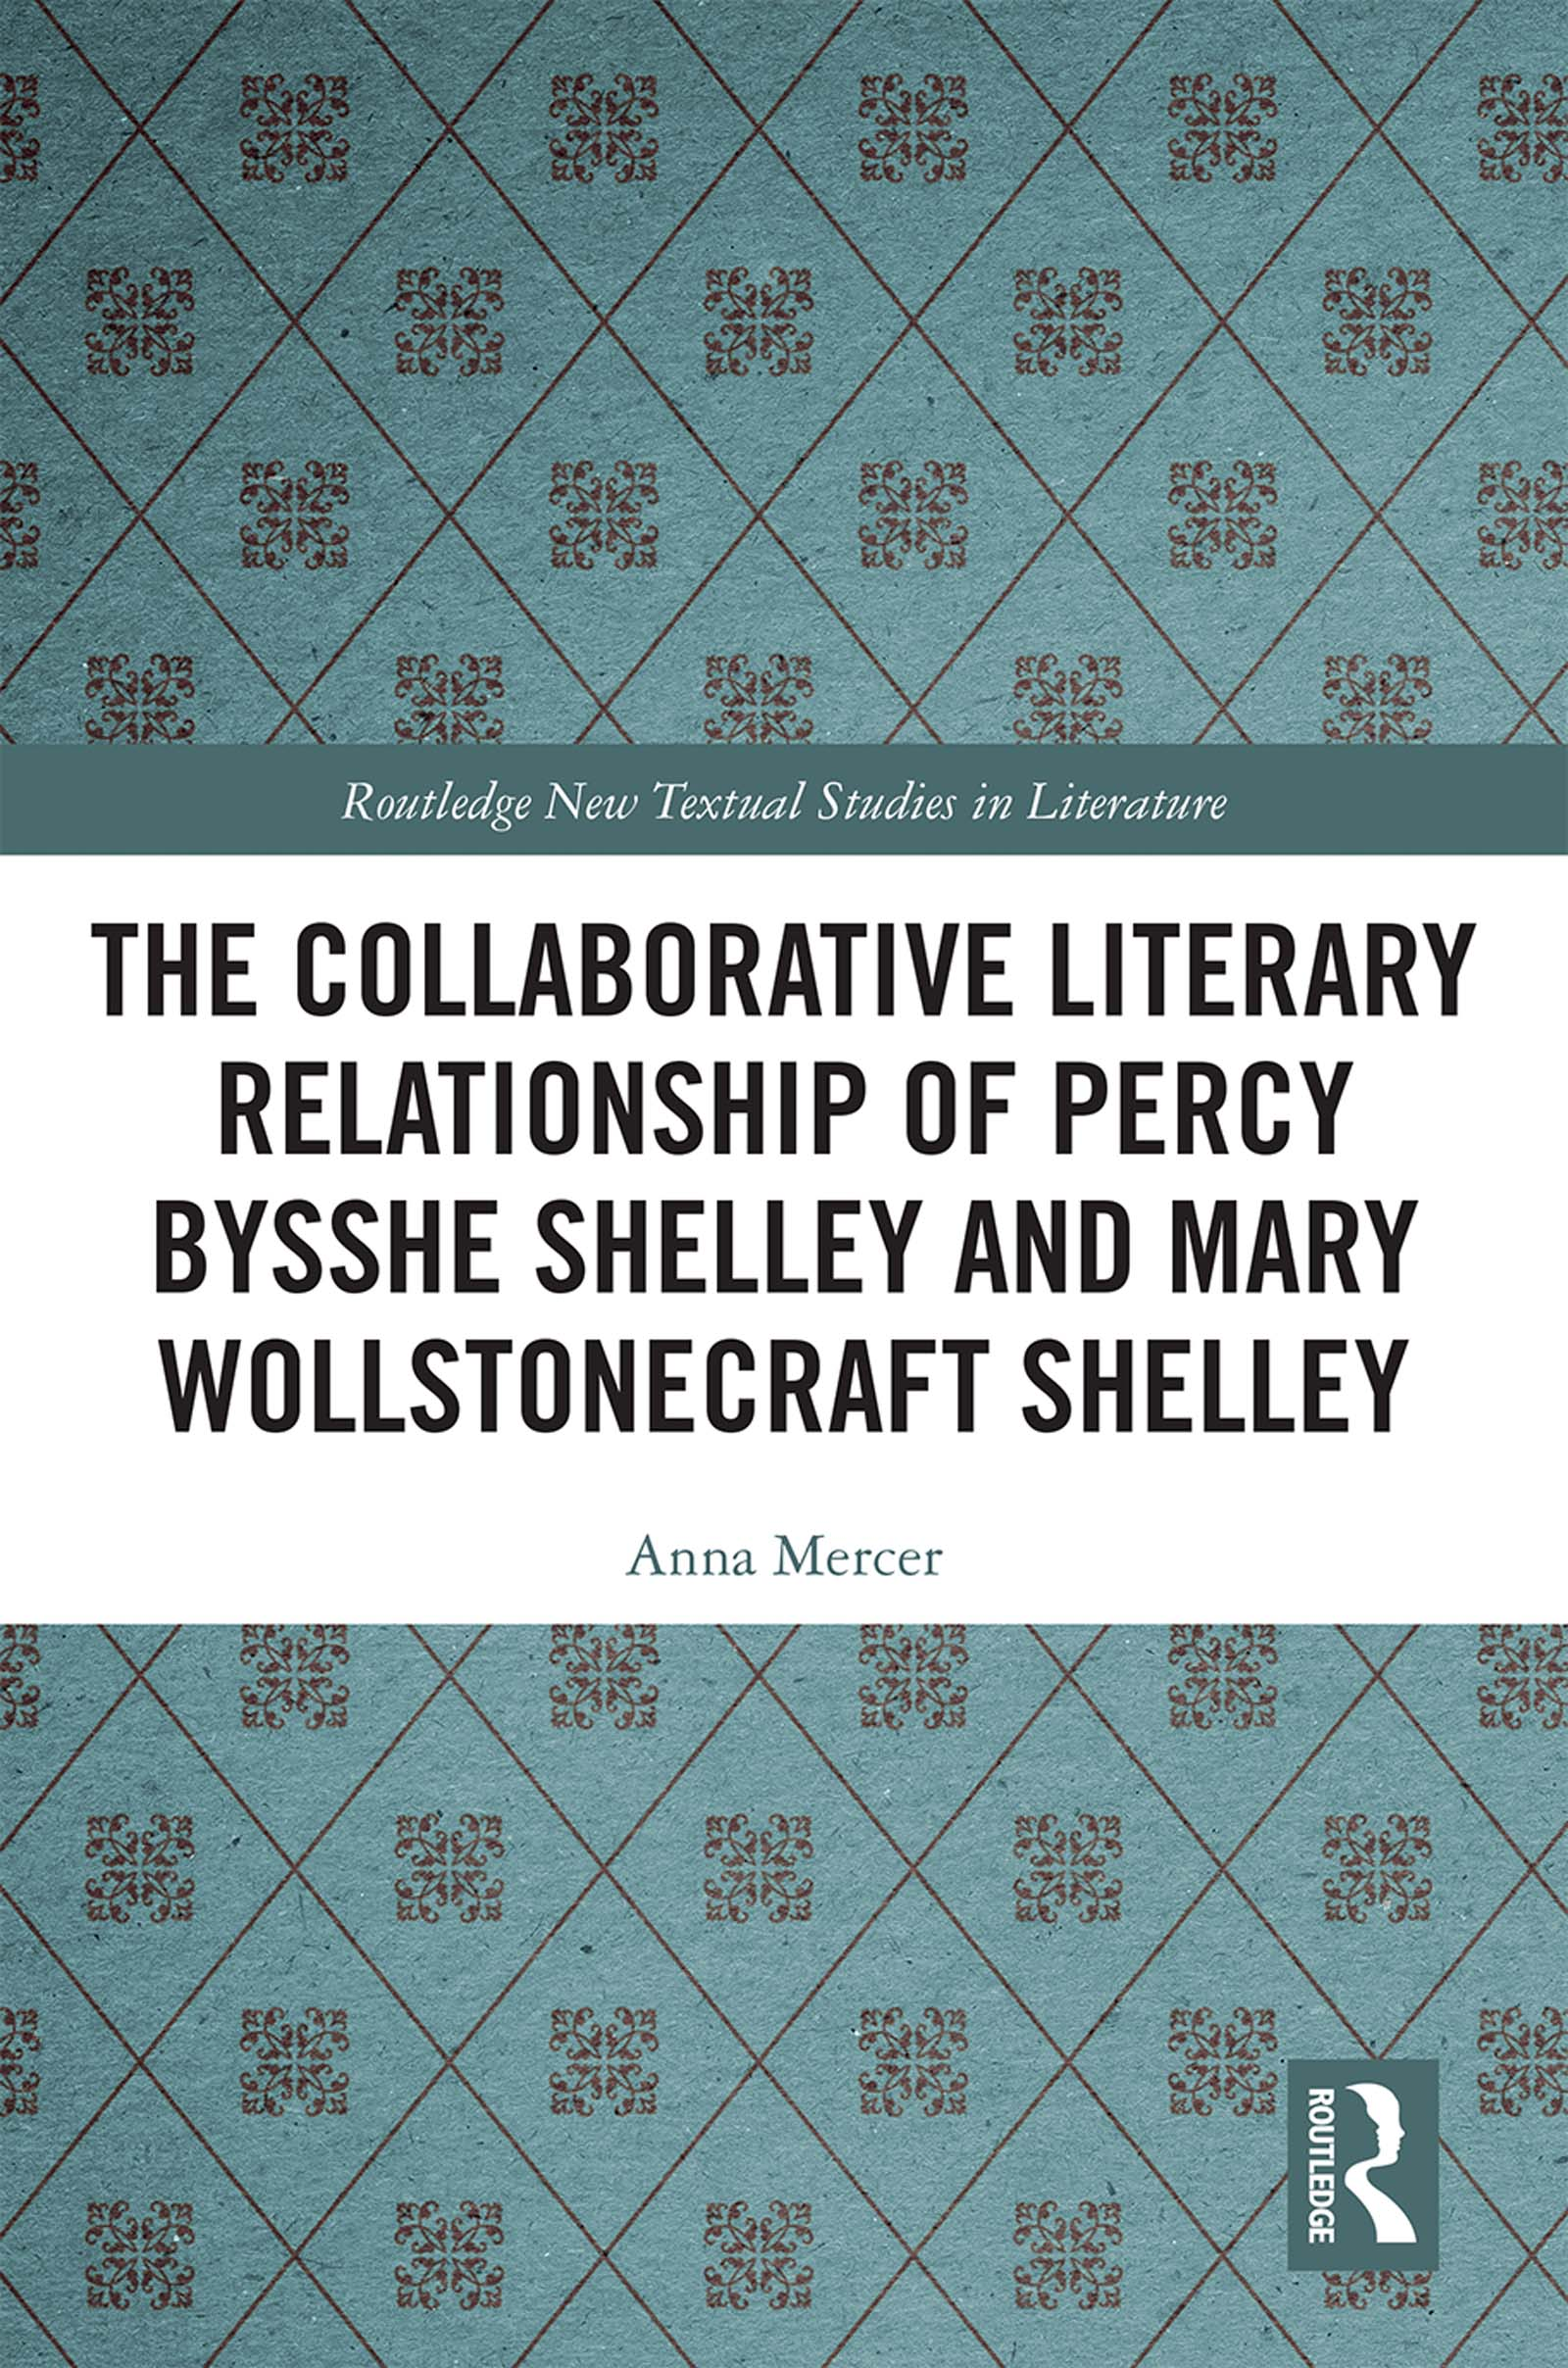 The Collaborative Literary Relationship of Percy Bysshe Shelley and Mary Wollstonecraft Shelley book cover